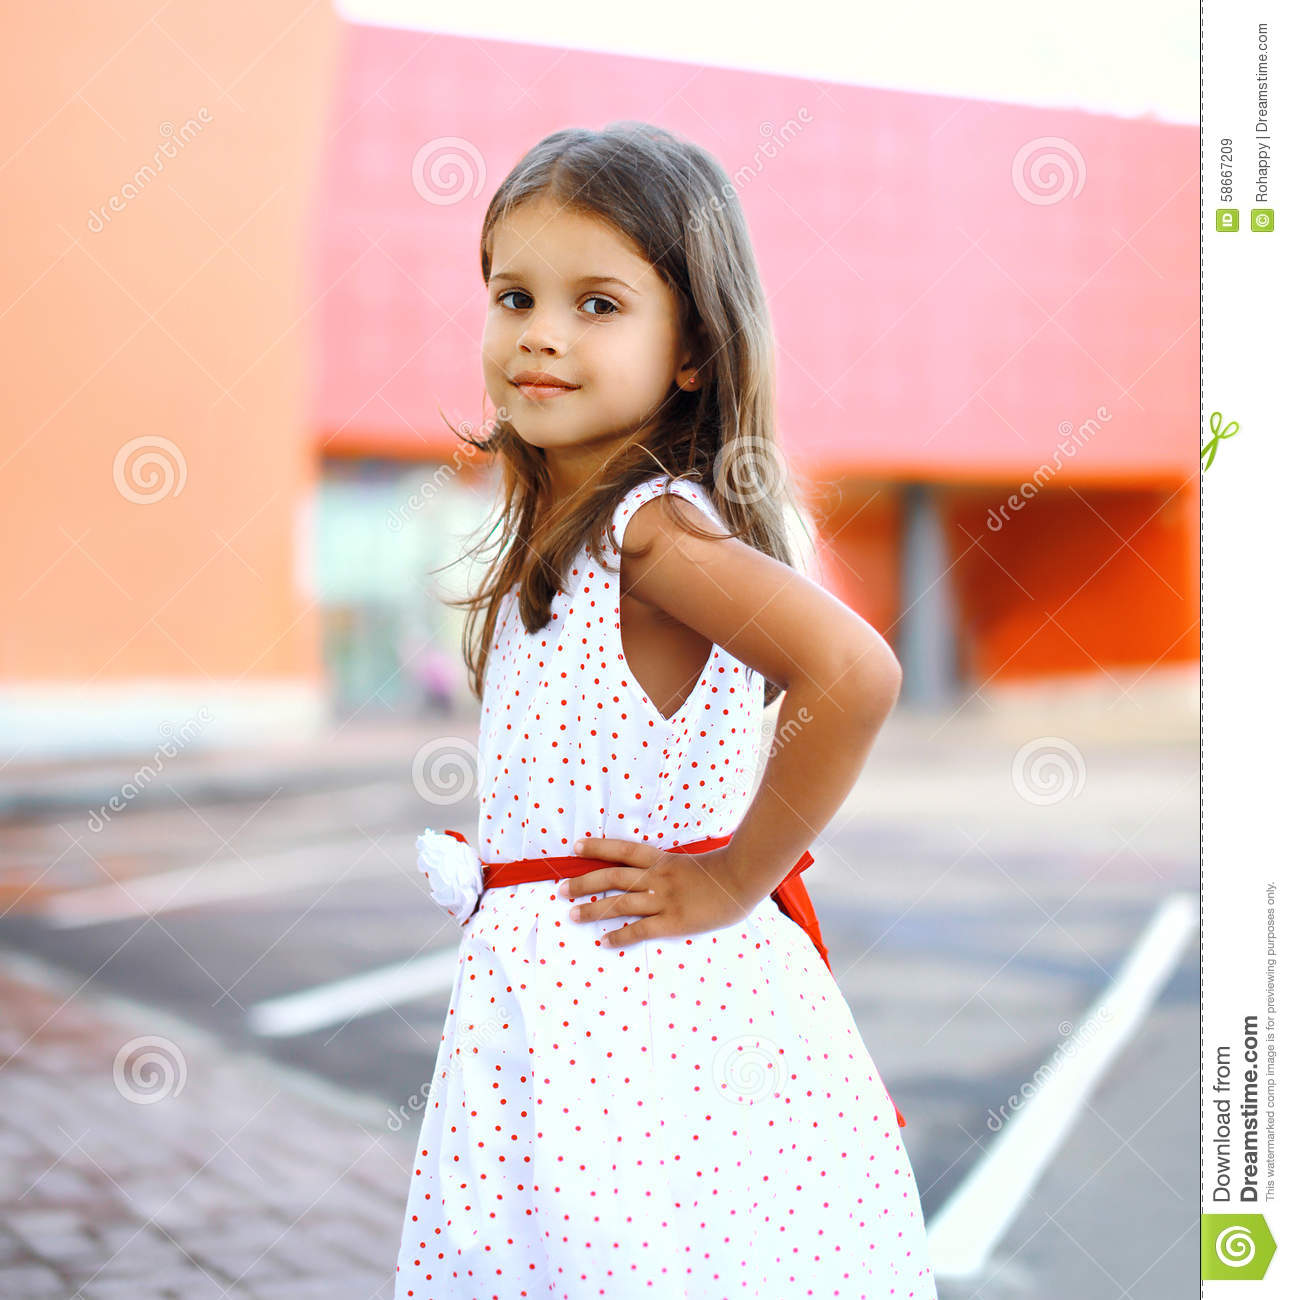 portrait of cute little girl wearing a dress stock image - image of